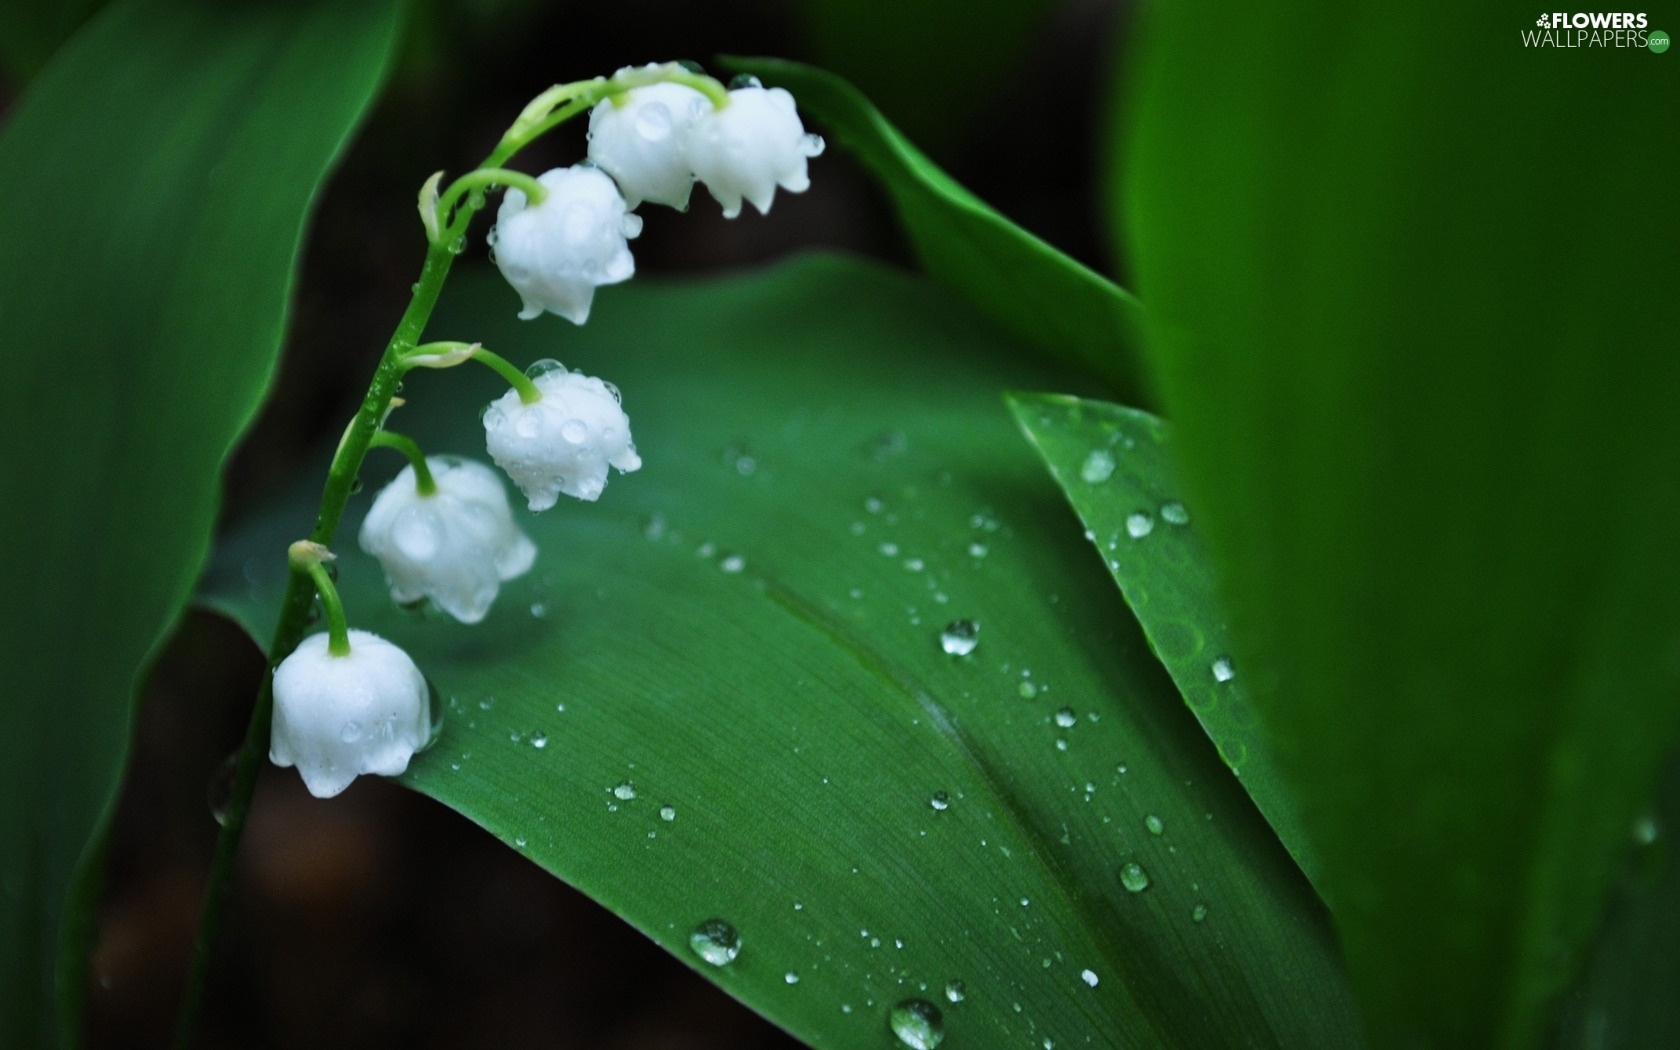 water, lily of the valley, flowers, drops, white - flowers